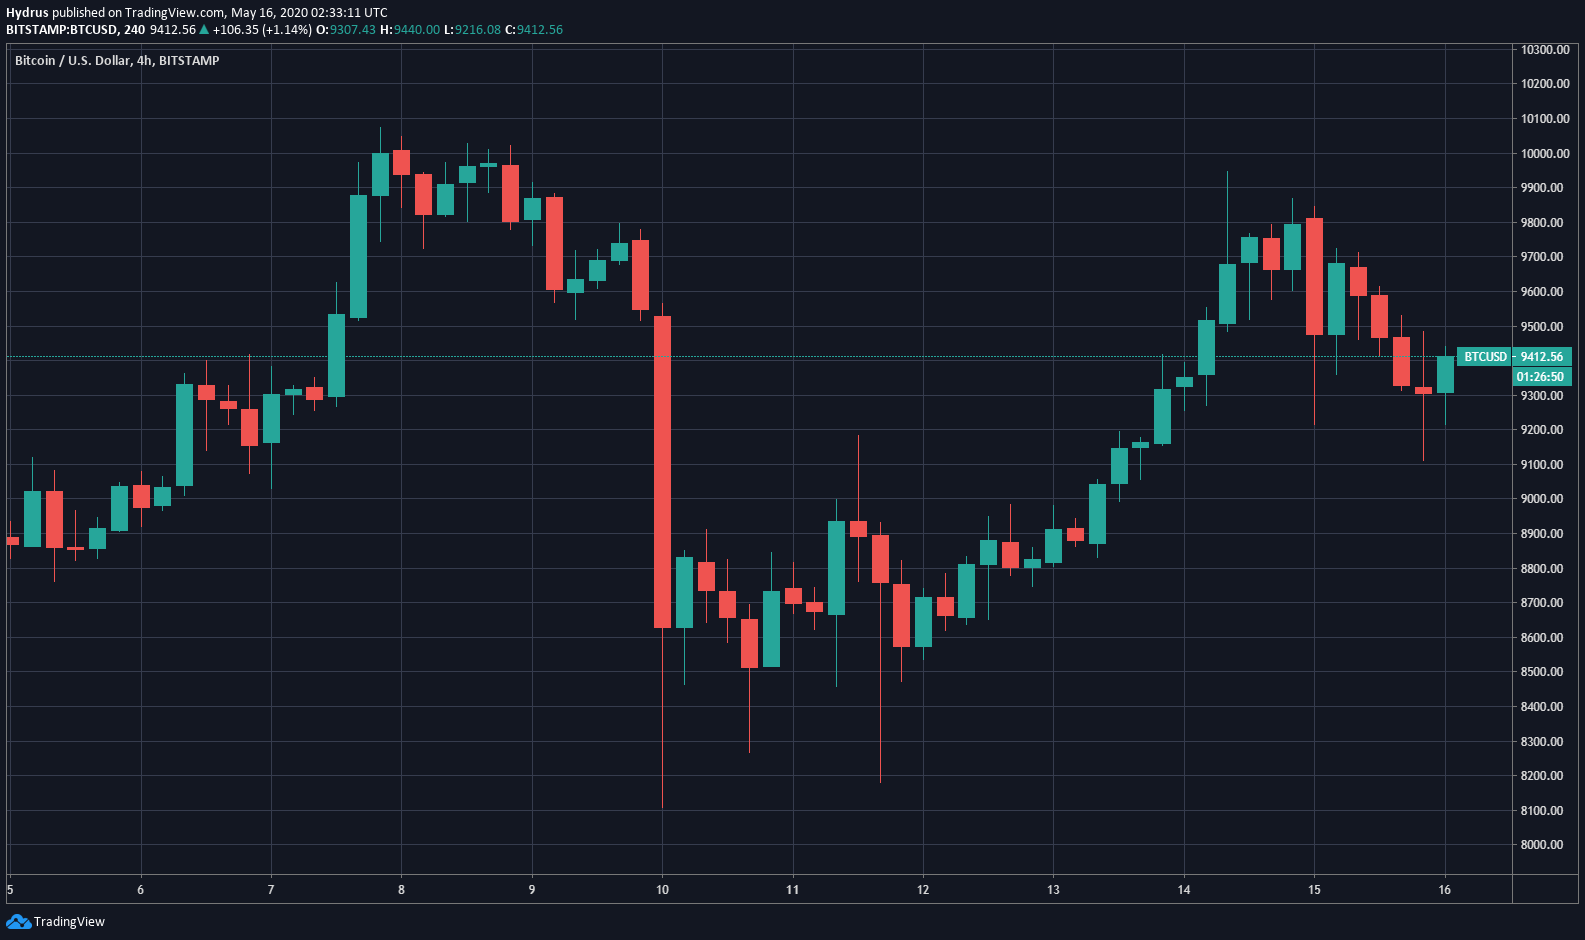 Bitcoin chart from TradingView.com